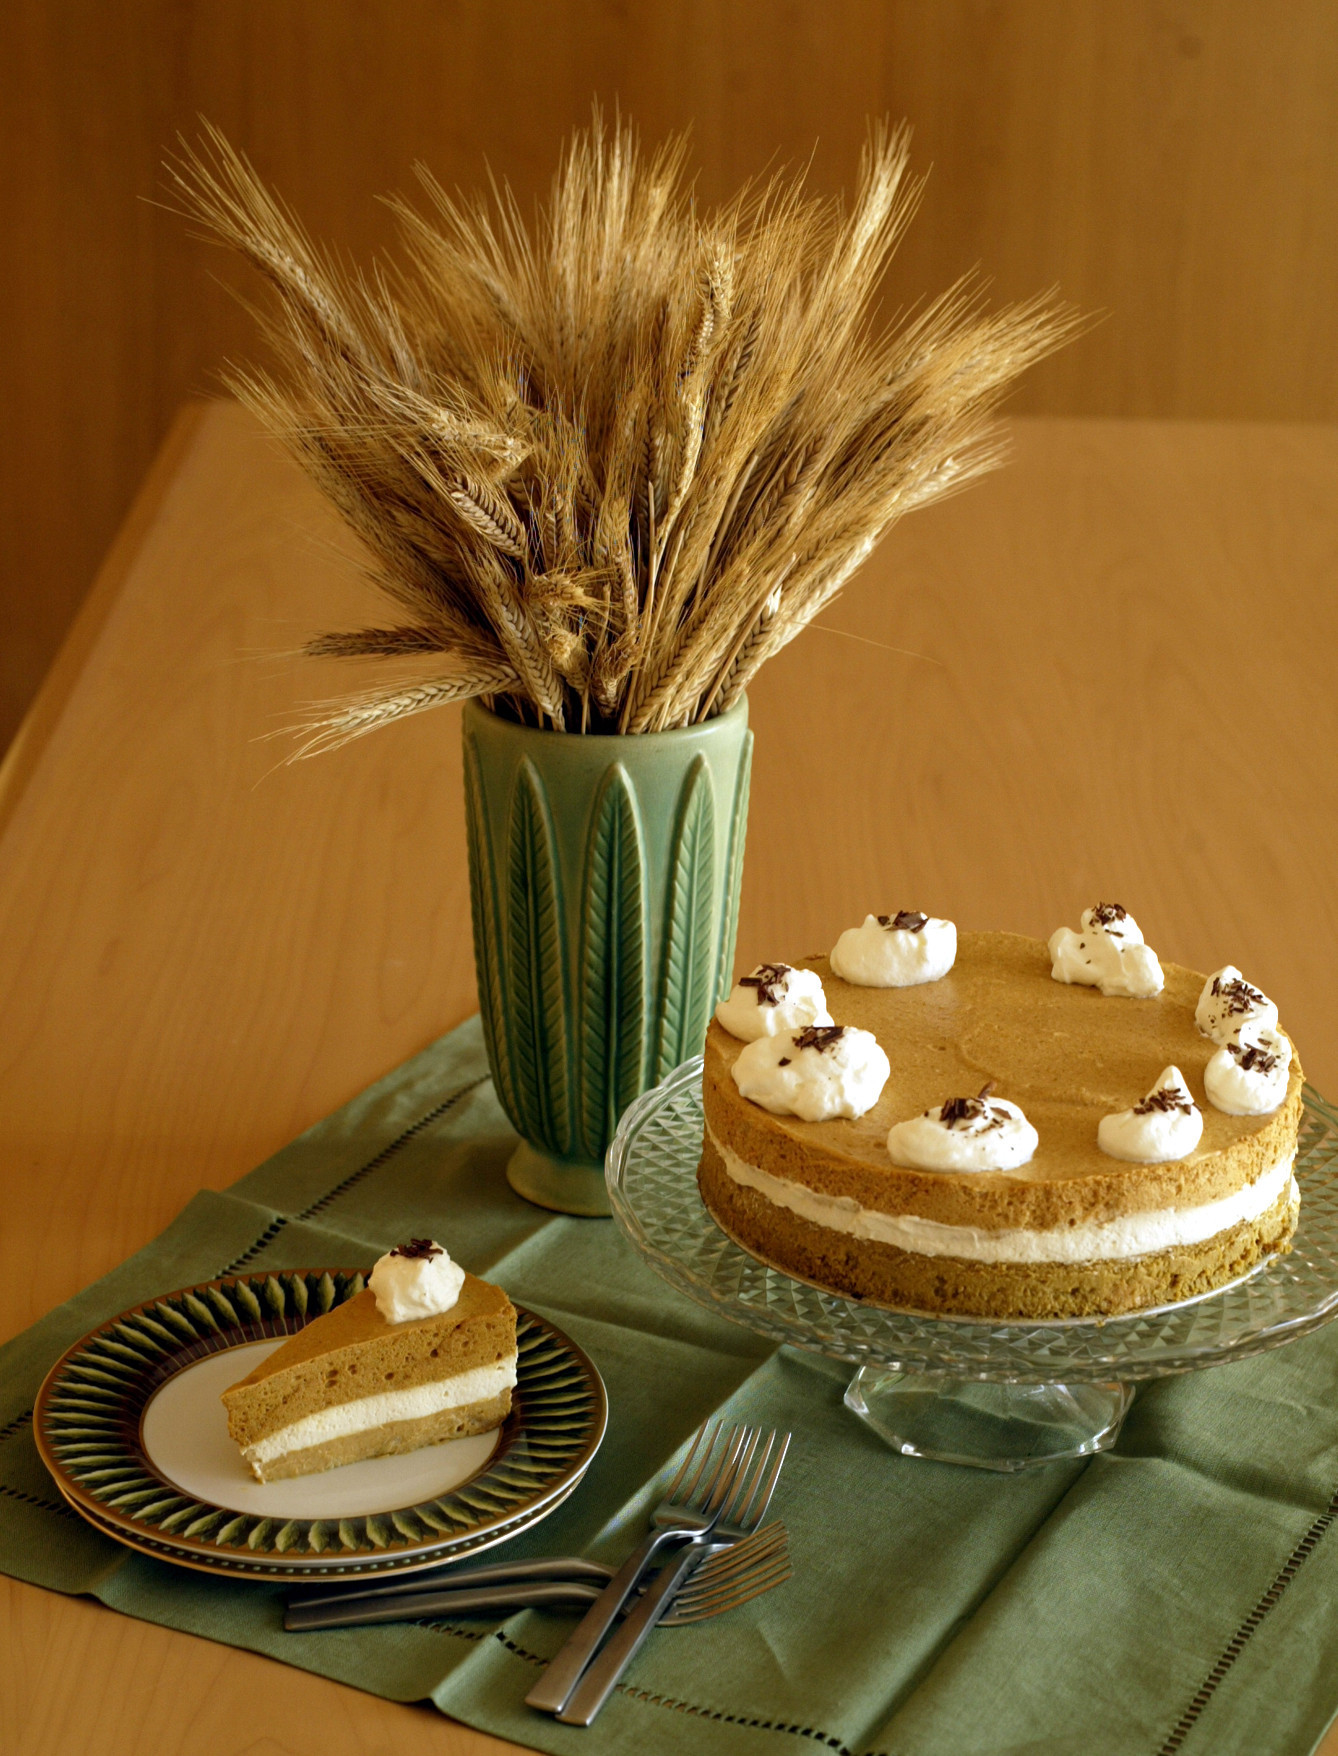 Photos: 97 great Thanksgiving recipes - Triple silken pumpkin torte